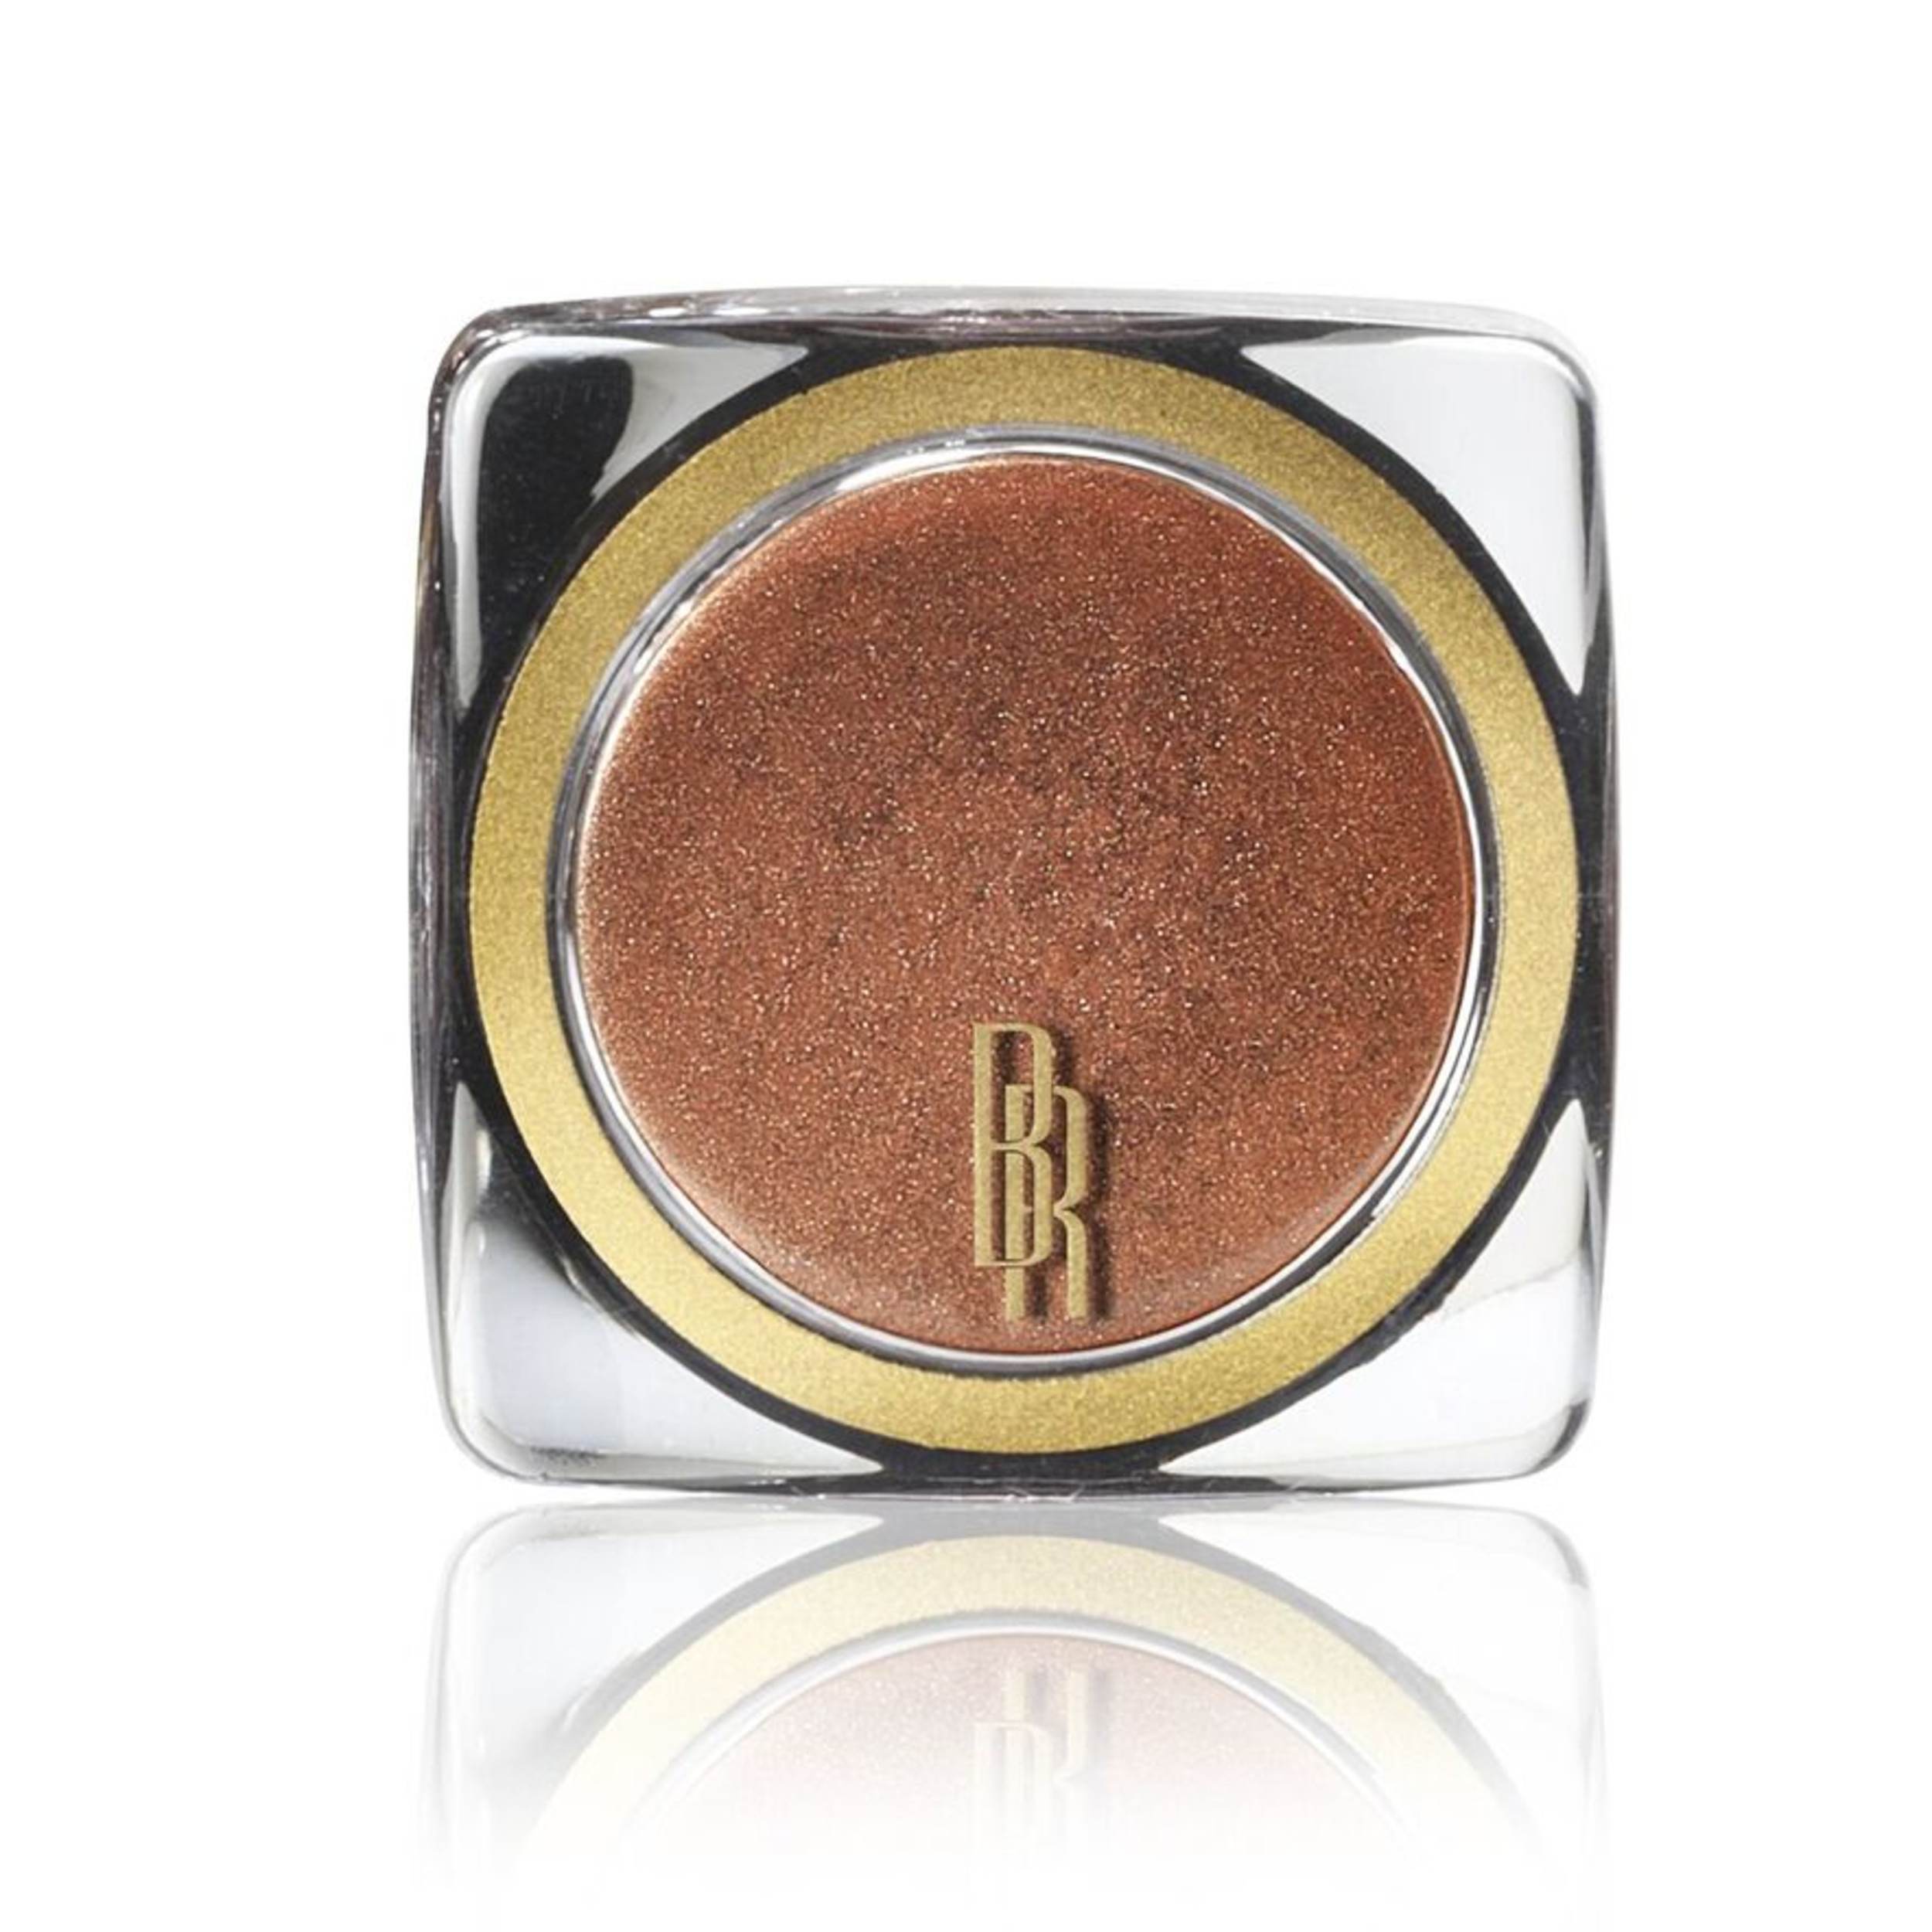 Black Radiance Continuous Color Pigments, Bronze